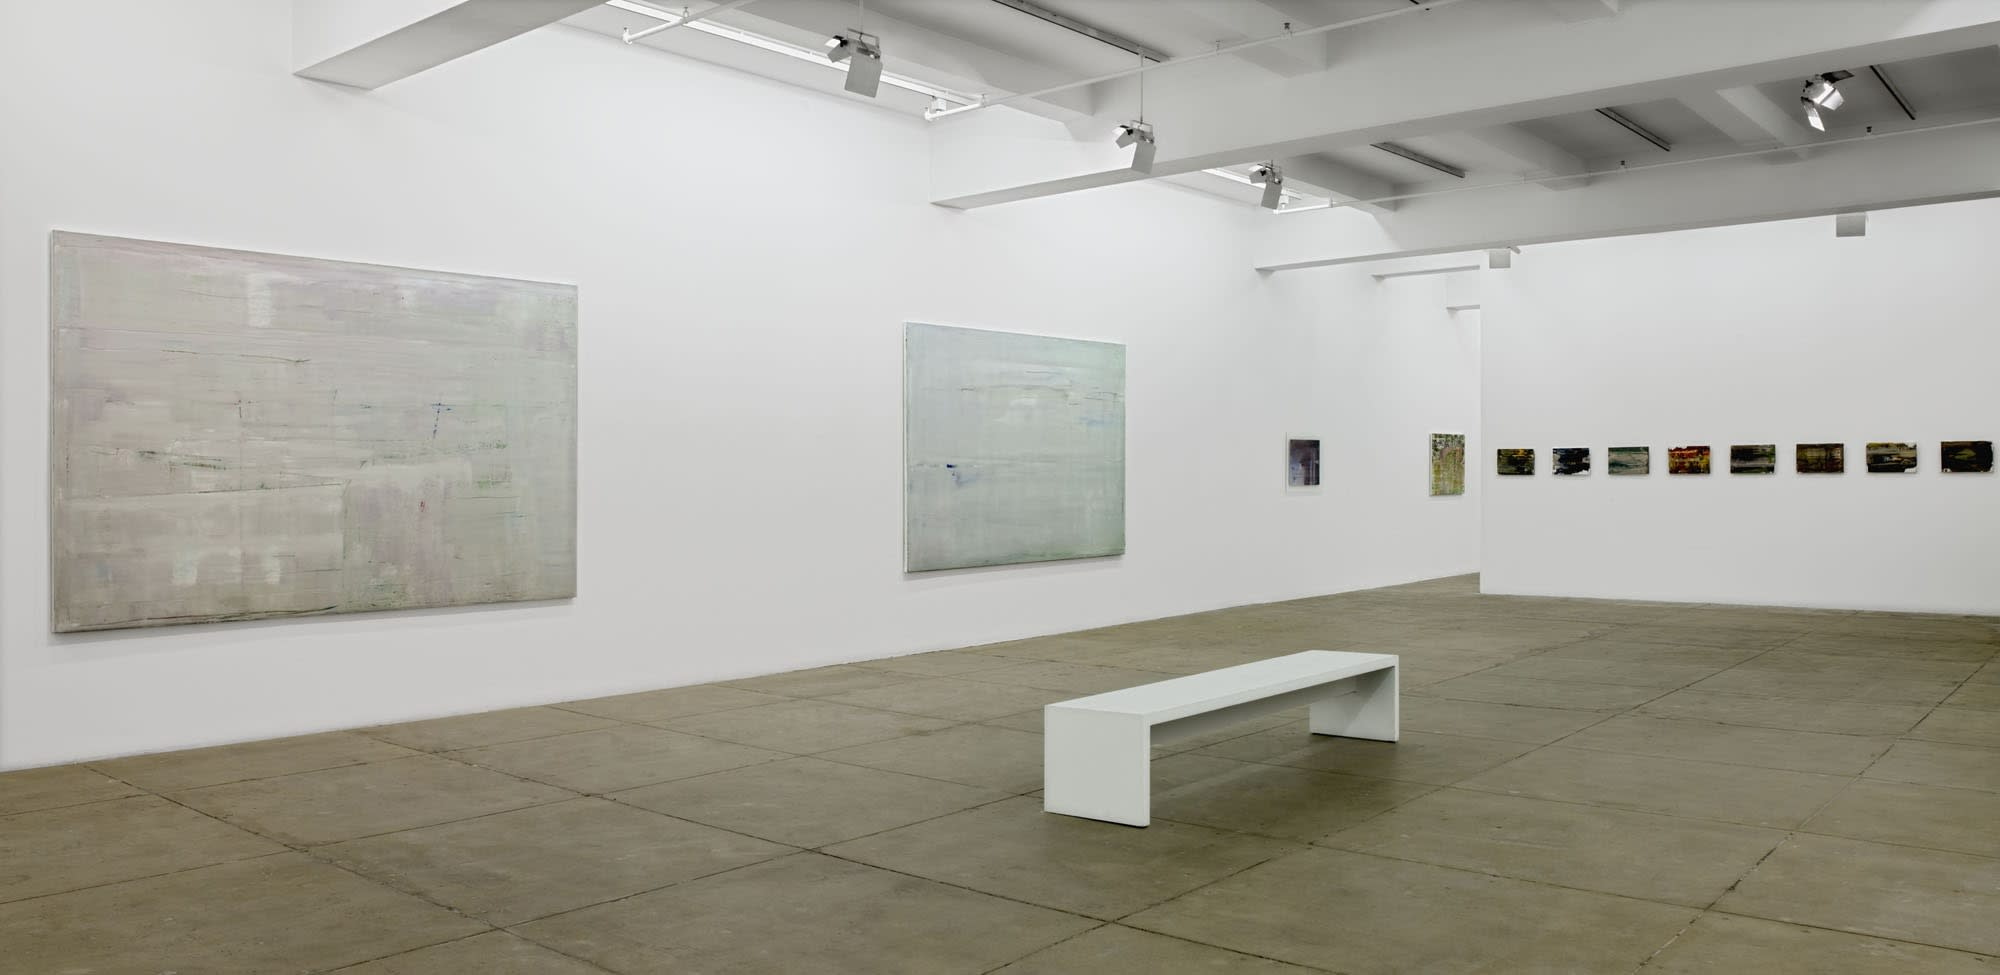 On the left, two large, gray abstract paintings hang on the wall. On the right is a row of 10 small, dark, abstract paintings. A white bench sits in the center of the room.